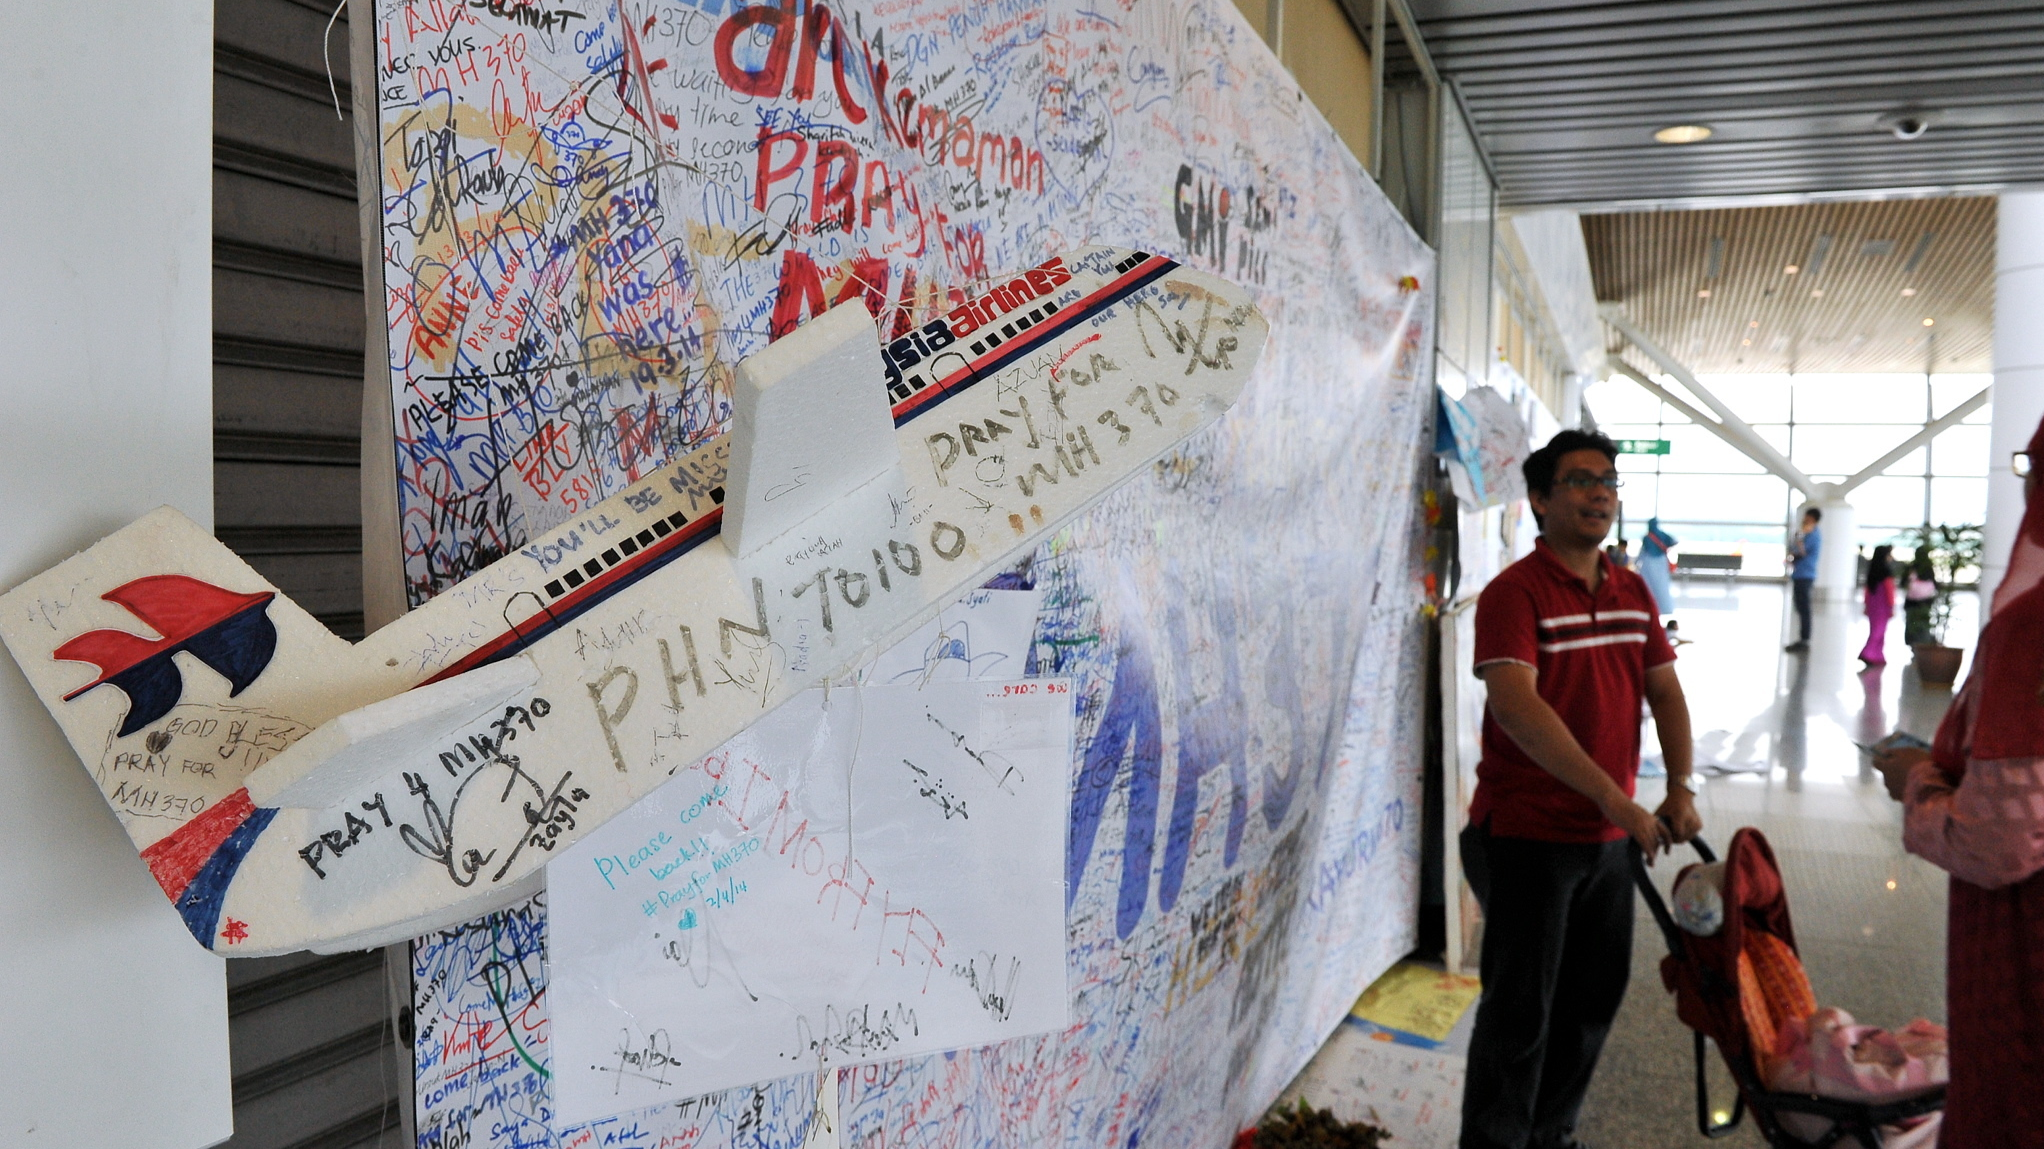 Pilot Claims Australian Transport Safety Bureau 'Complicit In Crime' Over MH370 Case